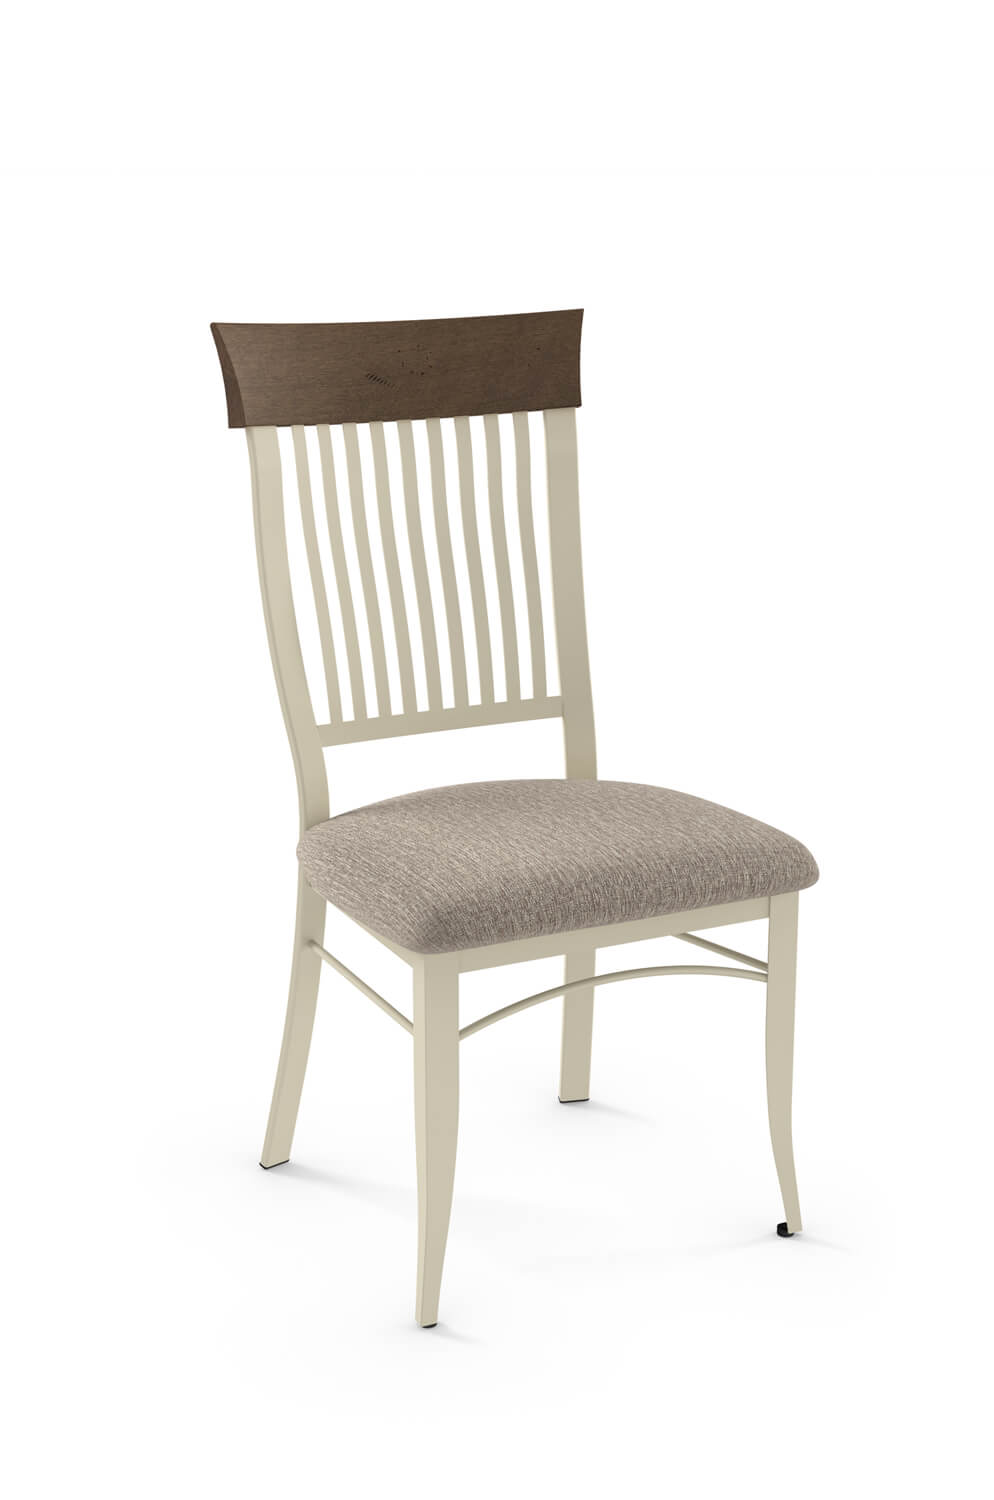 Annabelle Dining Chair with Distressed Wood